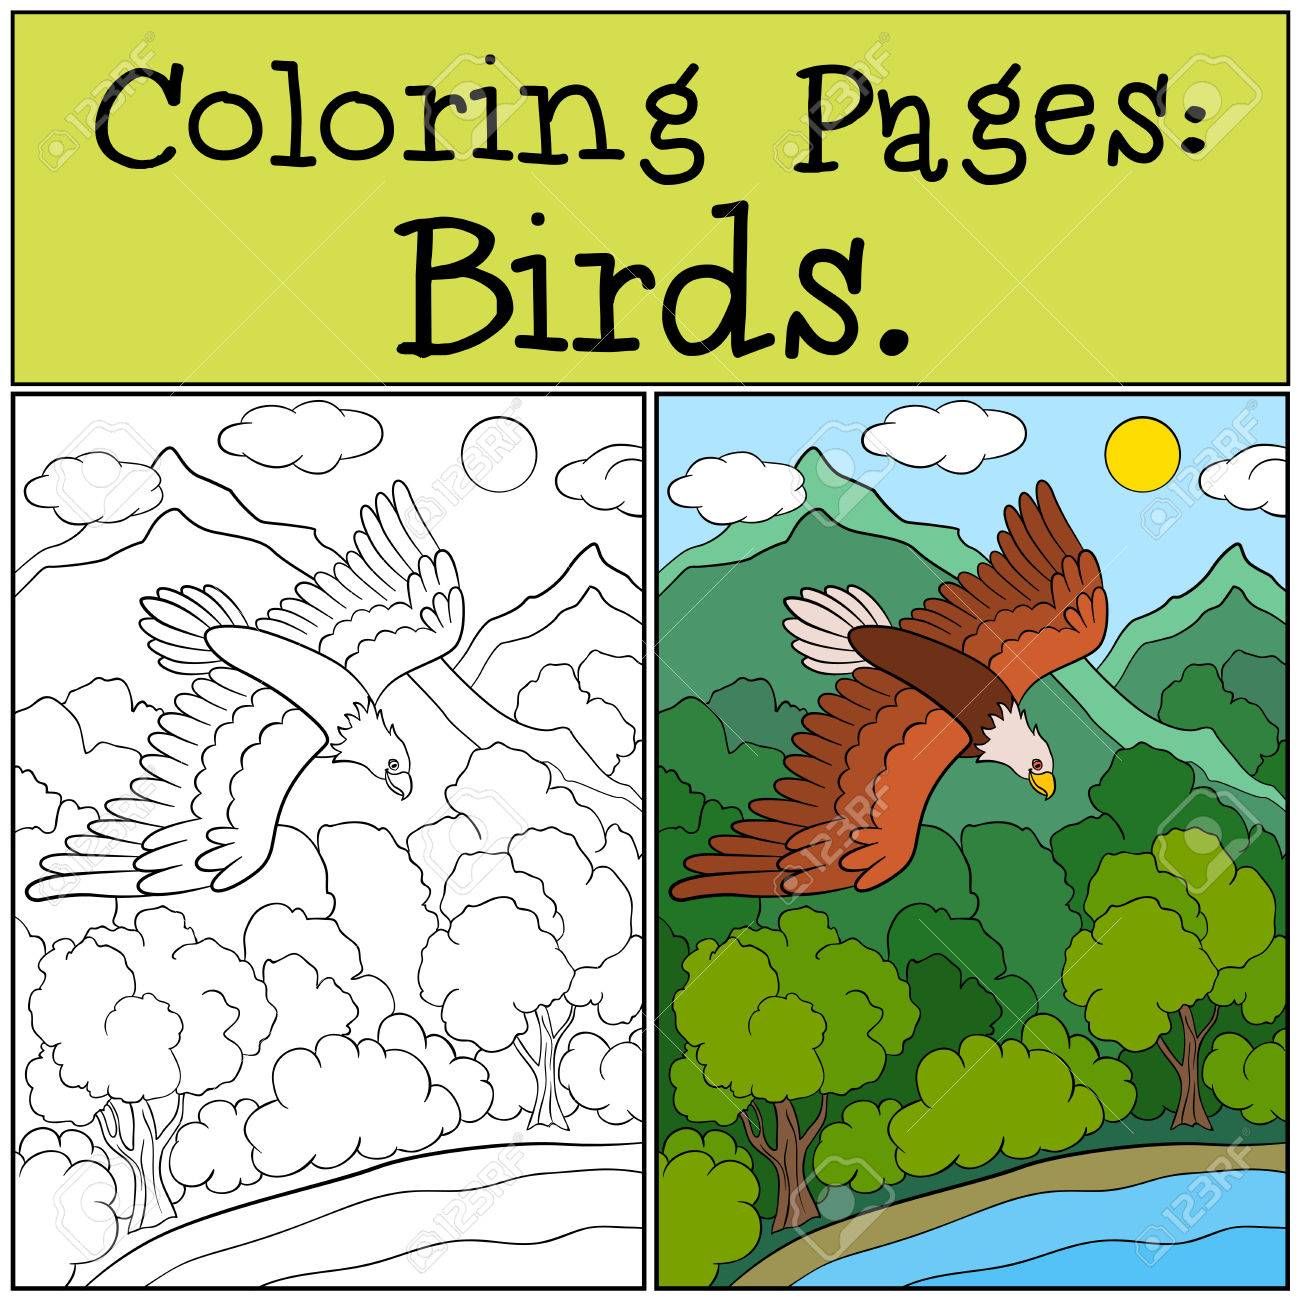 Coloring Pages: Wild Birds. Cute Bold Eagle Flying And Smiling ...